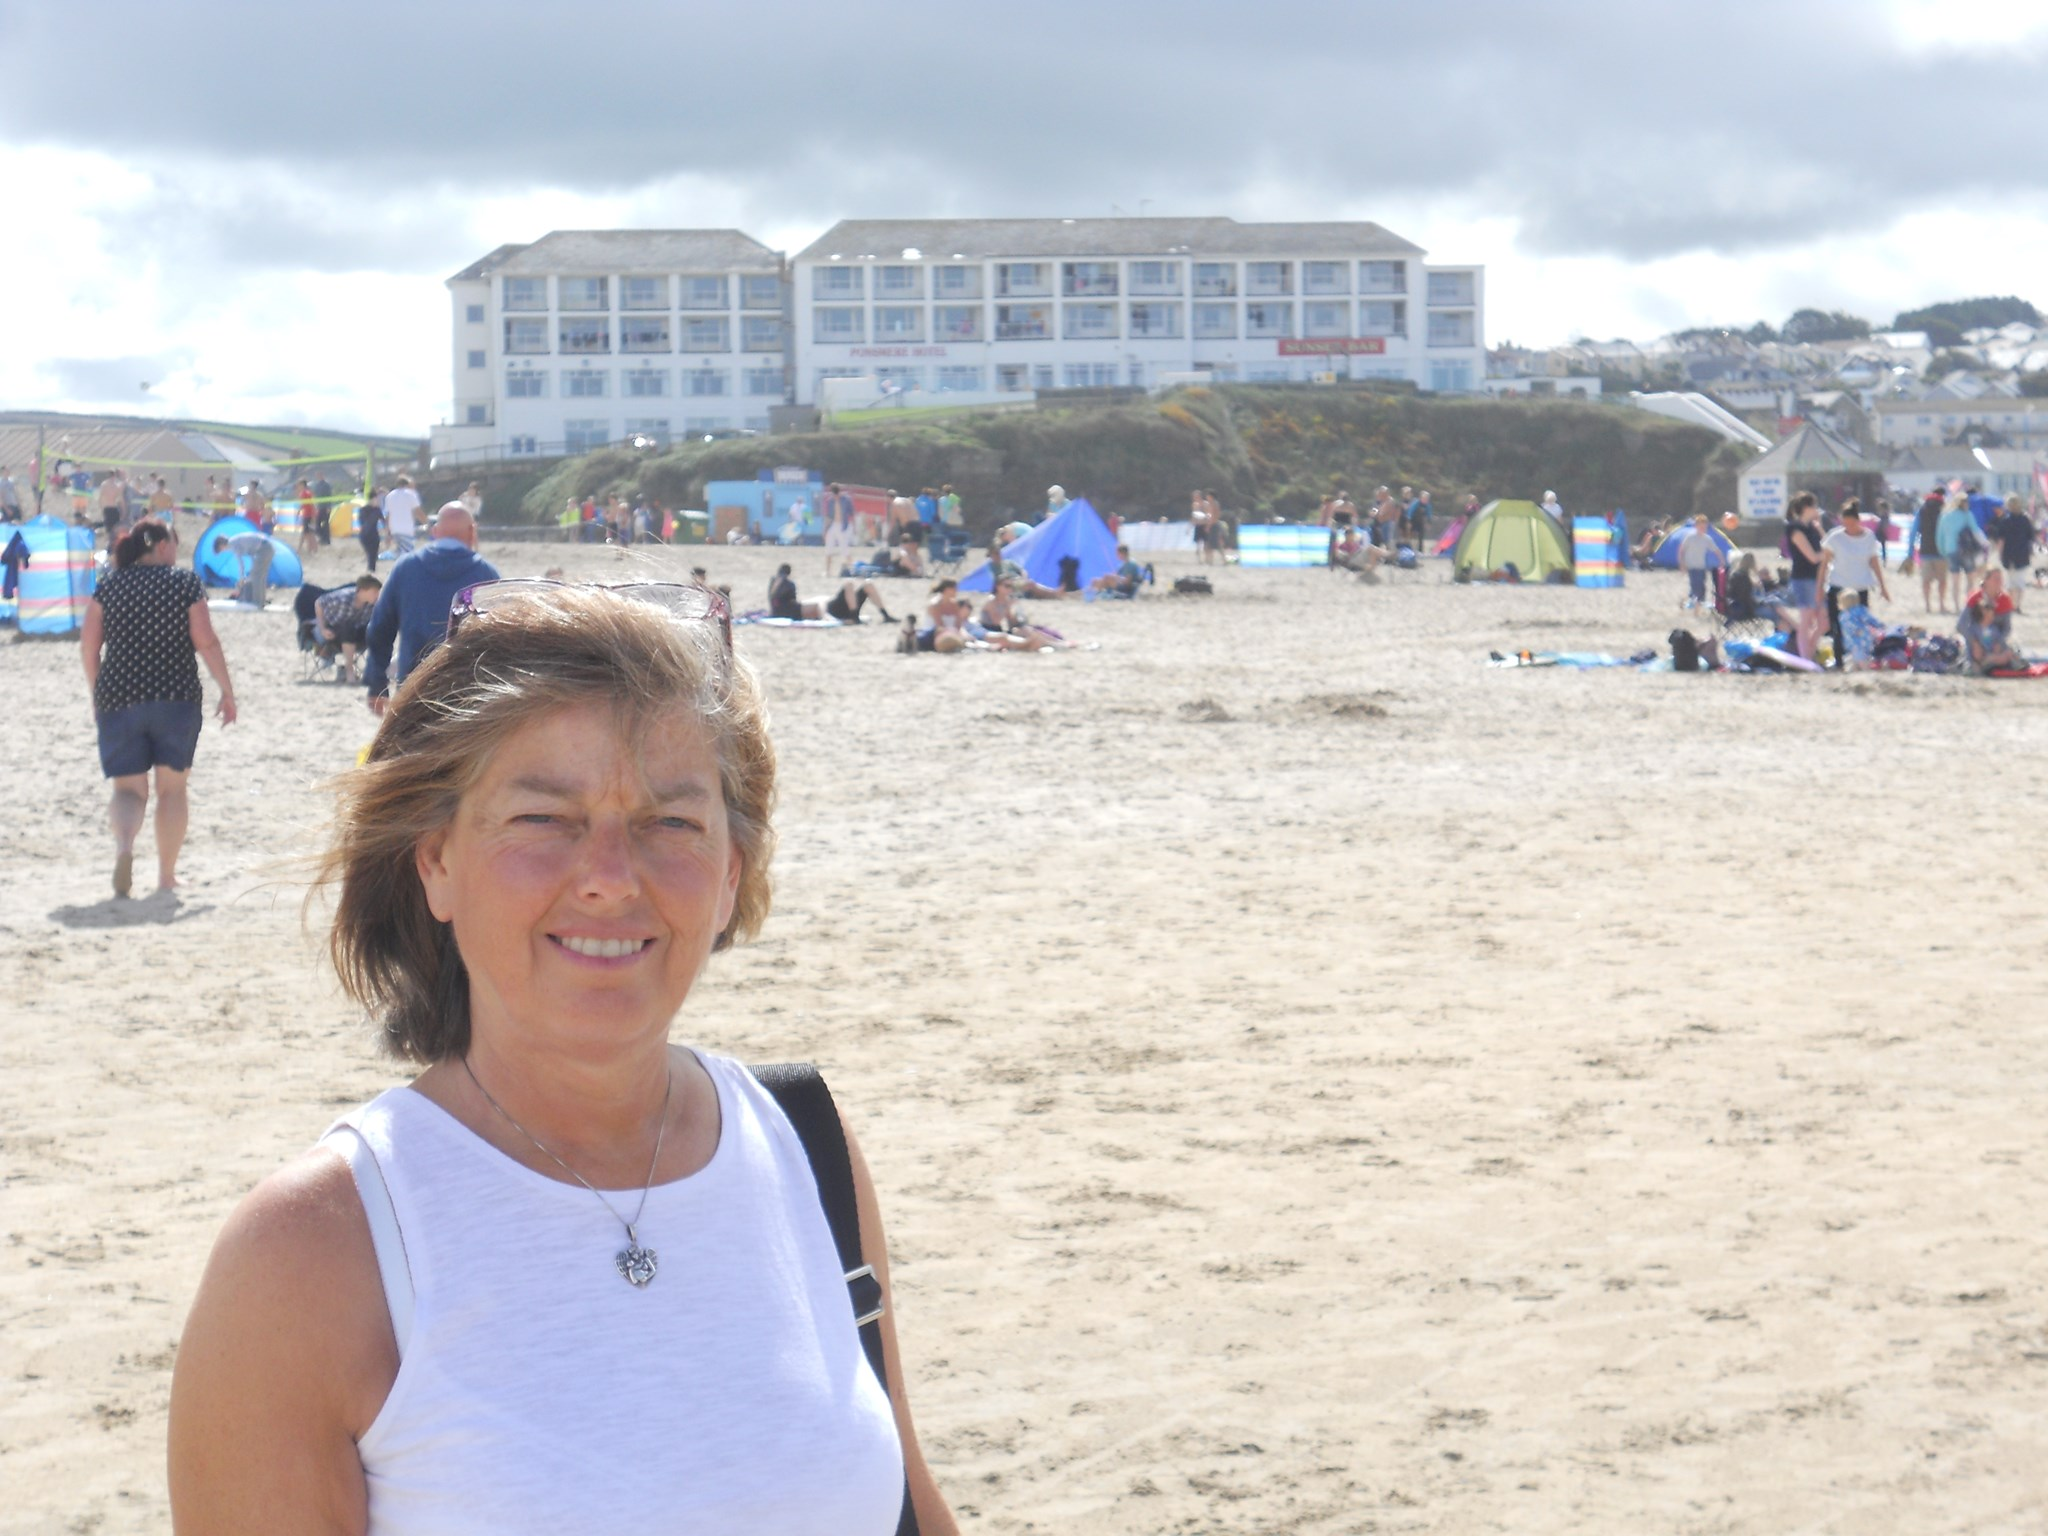 Mum on the beach with The Ponsmere Hotel in the background